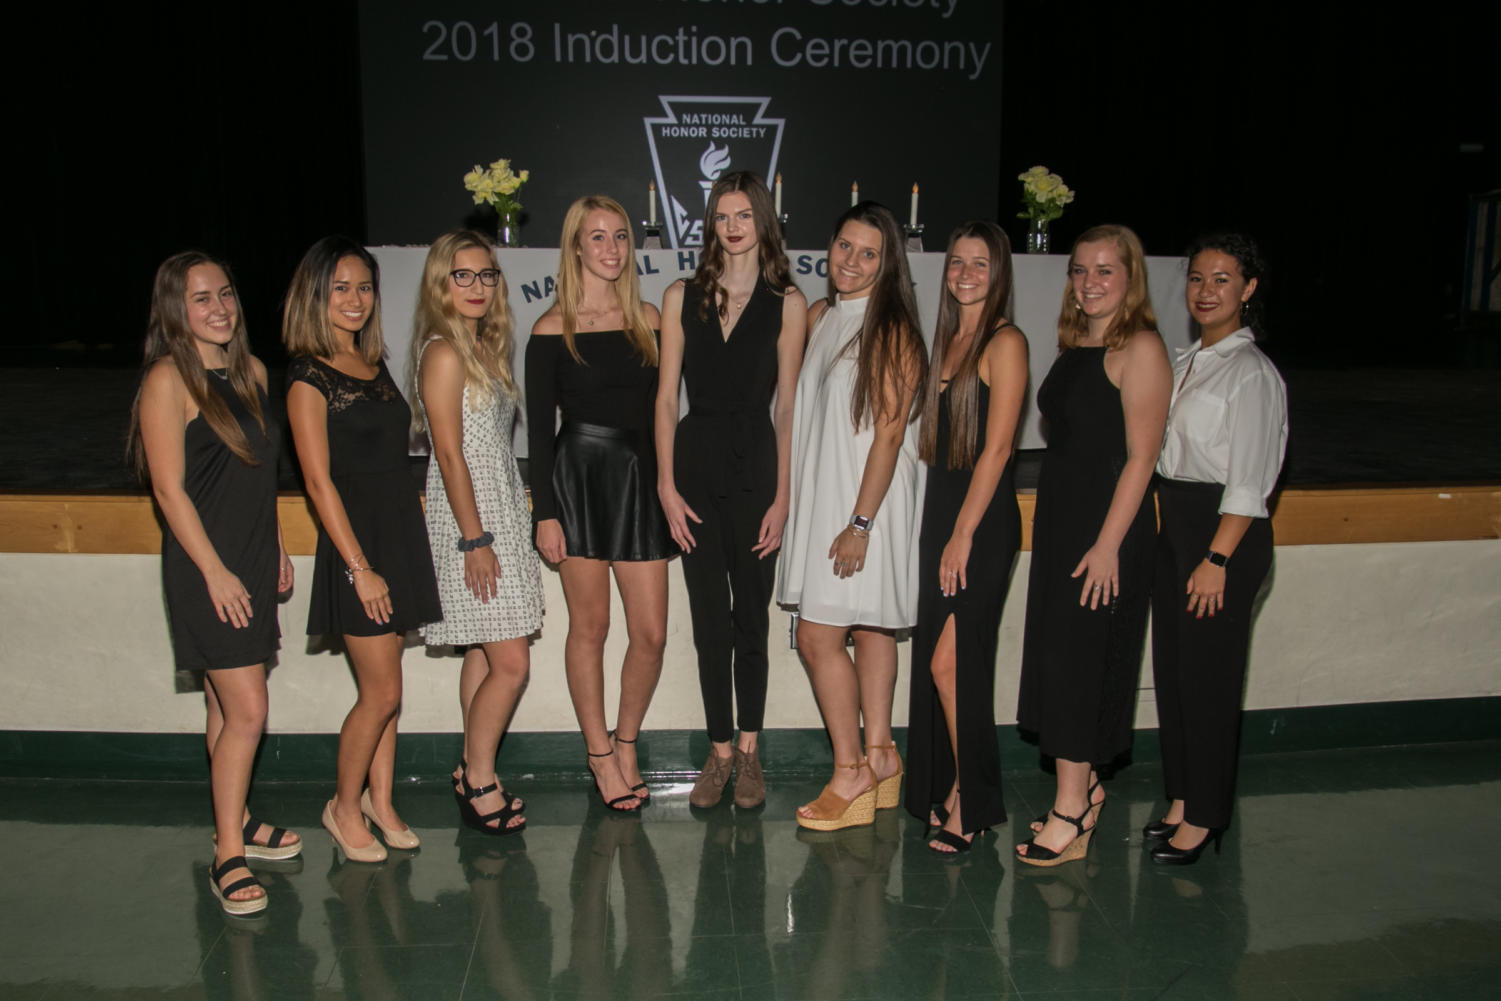 (From left to right) National Honor Society officers Elisabeth Stahl, Gabi Young, Lily Greever, Rachel Caspar, Gabrielle Summers, Elyssa Belcastro, Shannon Sawtell, Ashley Sepulveres and Chris Palles at the induction ceremony.